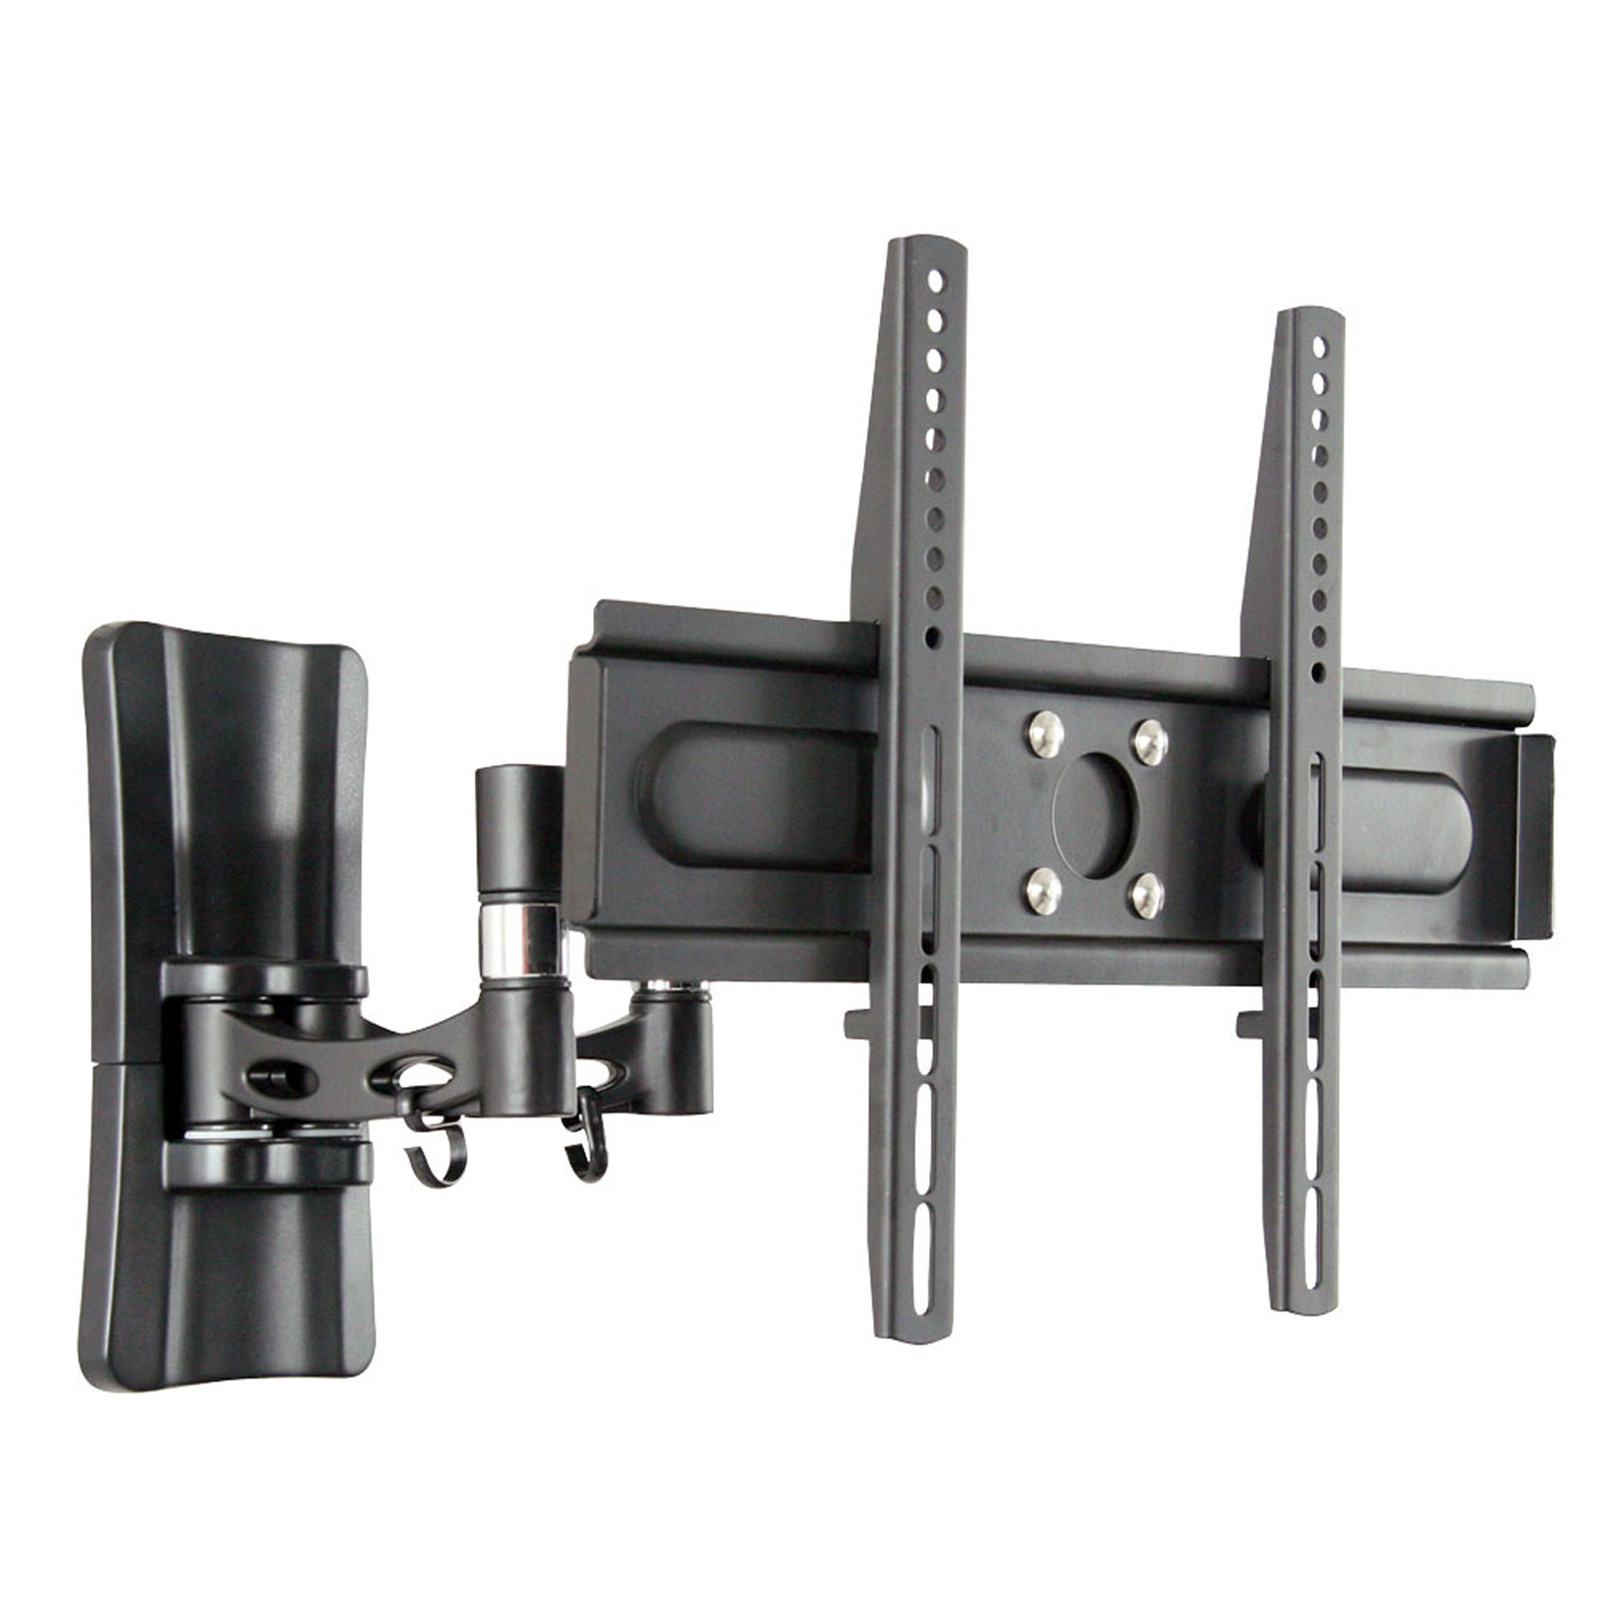 Kmart Tv Mount Pyle 26 Quot To 42 Quot Flat Panel Articulating Tv Wall Mount